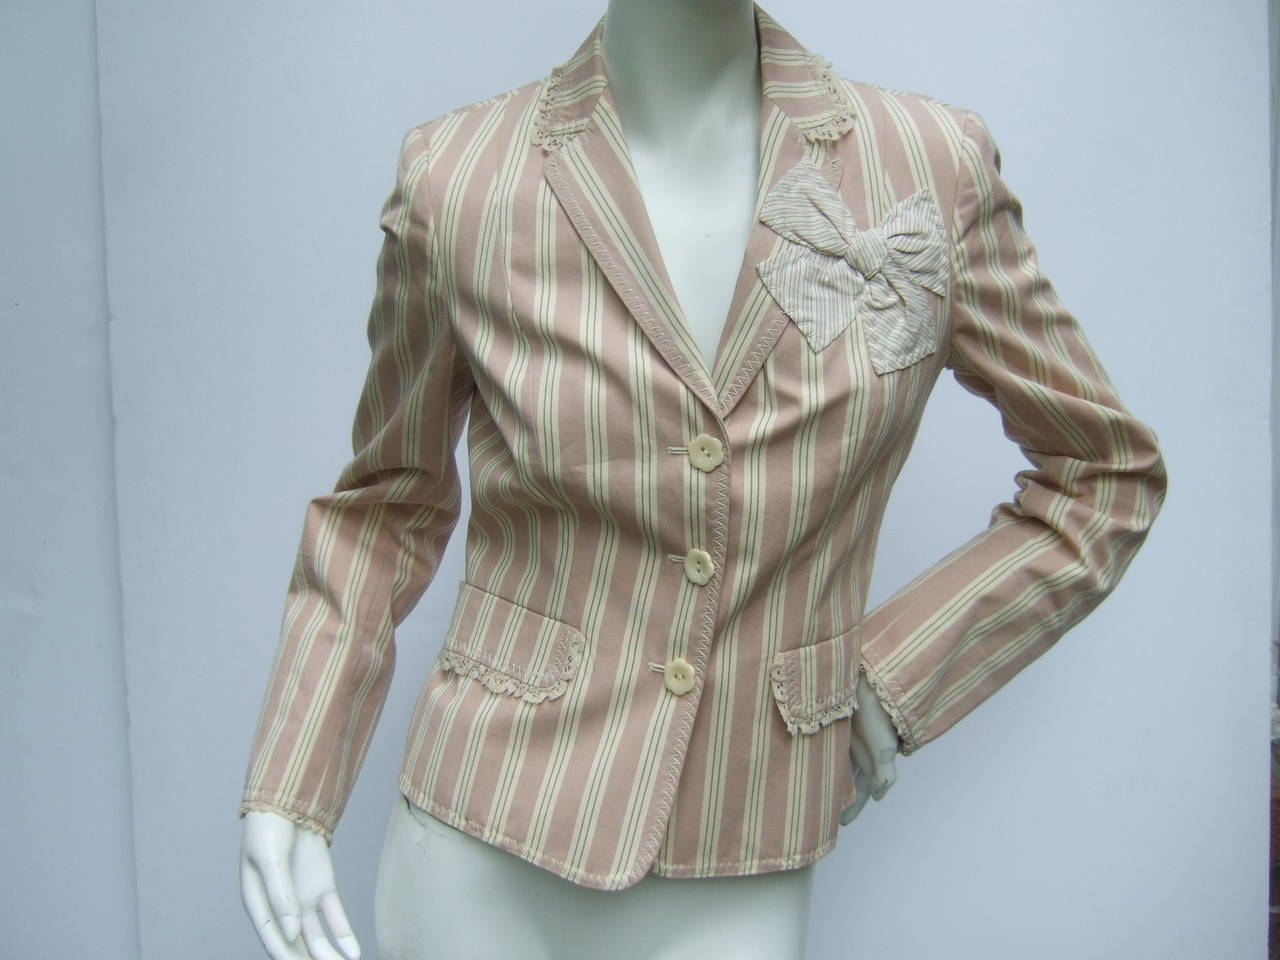 Moschino Cheap & Chic Awning striped cotton jacket US Size 8 The crisp summer jacket is designed with dusty pale pink  stripes combined with tan stripes. One of the chest pockets  is designed with an applique striped bow. The lapel & edges are